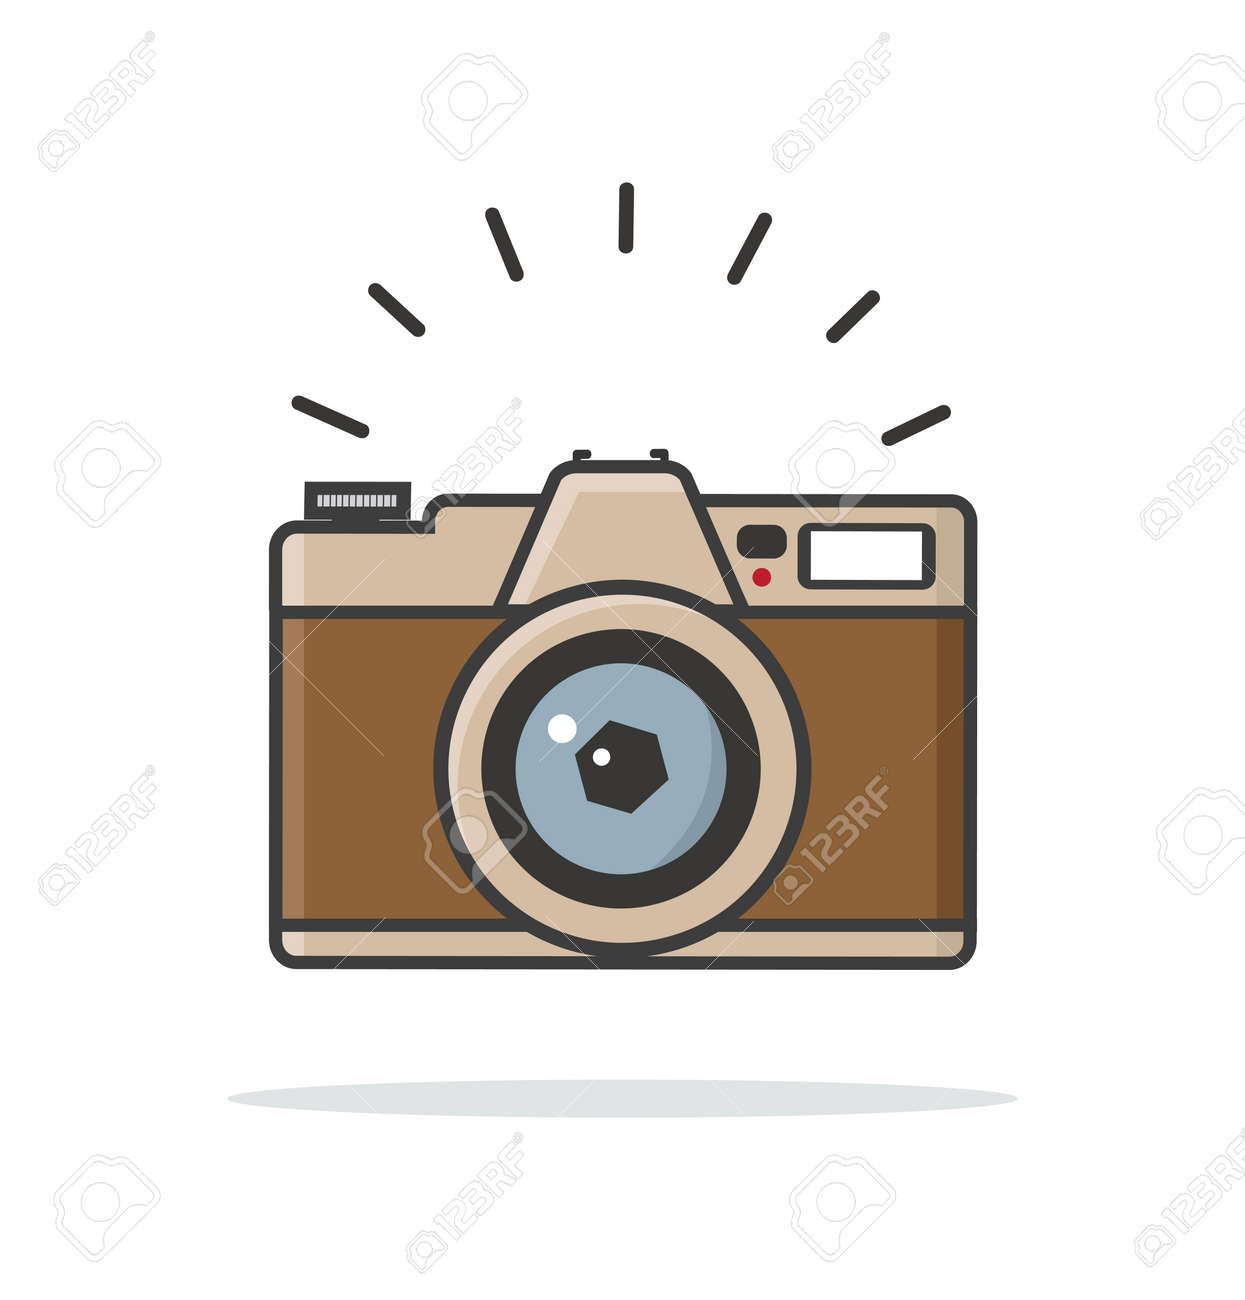 Flat style vintage camera vector sign icon - 168920263